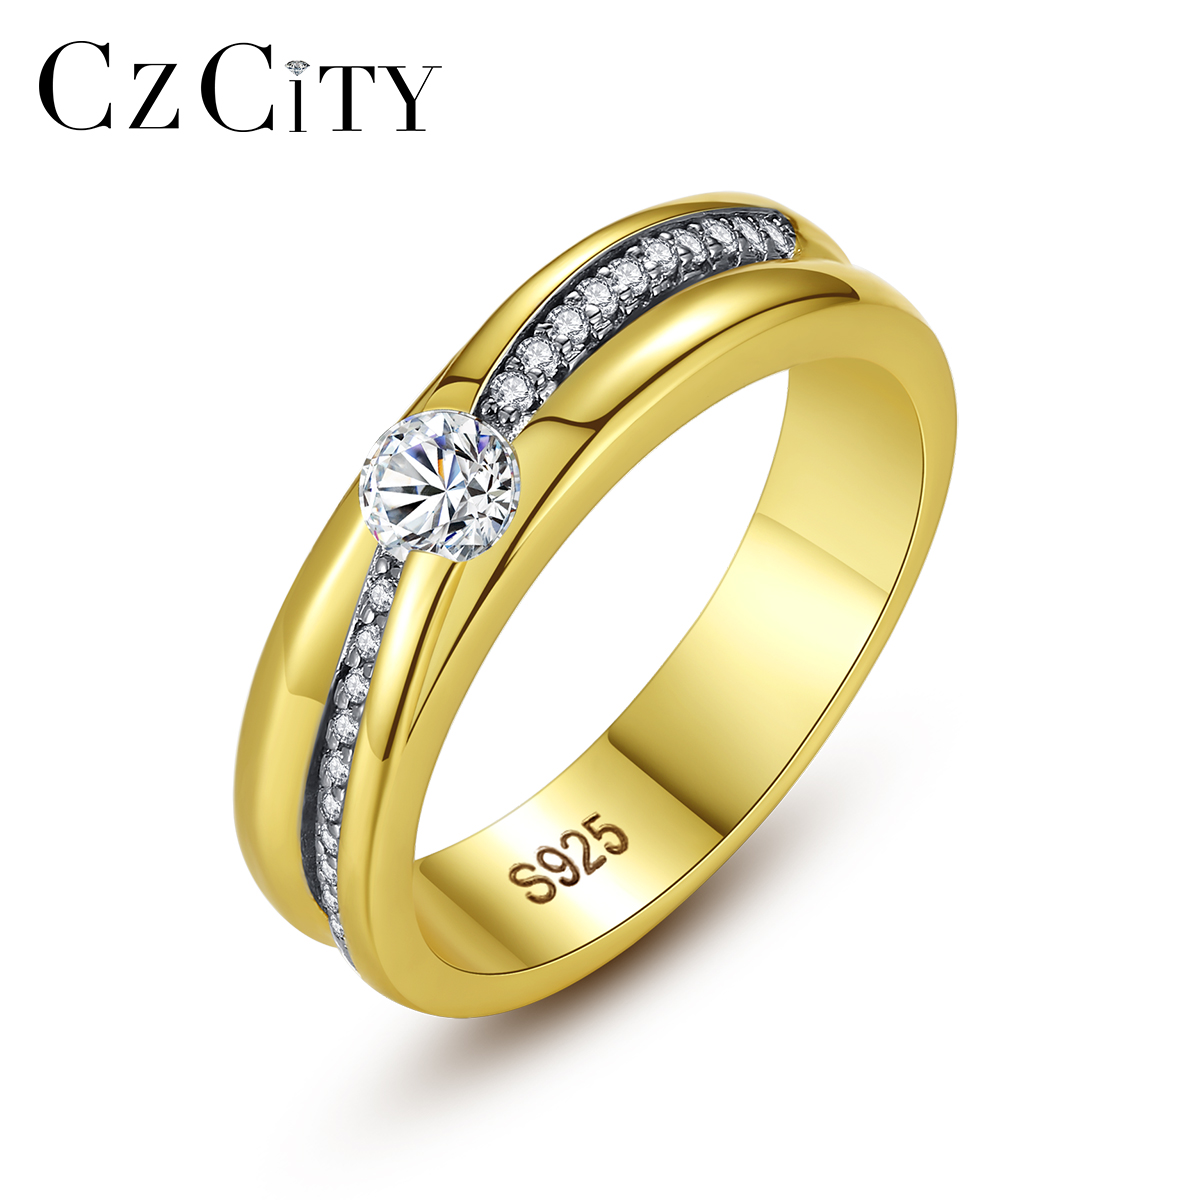 CZCITY Golden Wedding Bands Fine Jewelry Pure 925 Sterling Silver Rings for Women Wedding Engagement Aneis De Prata Lovers Gifts